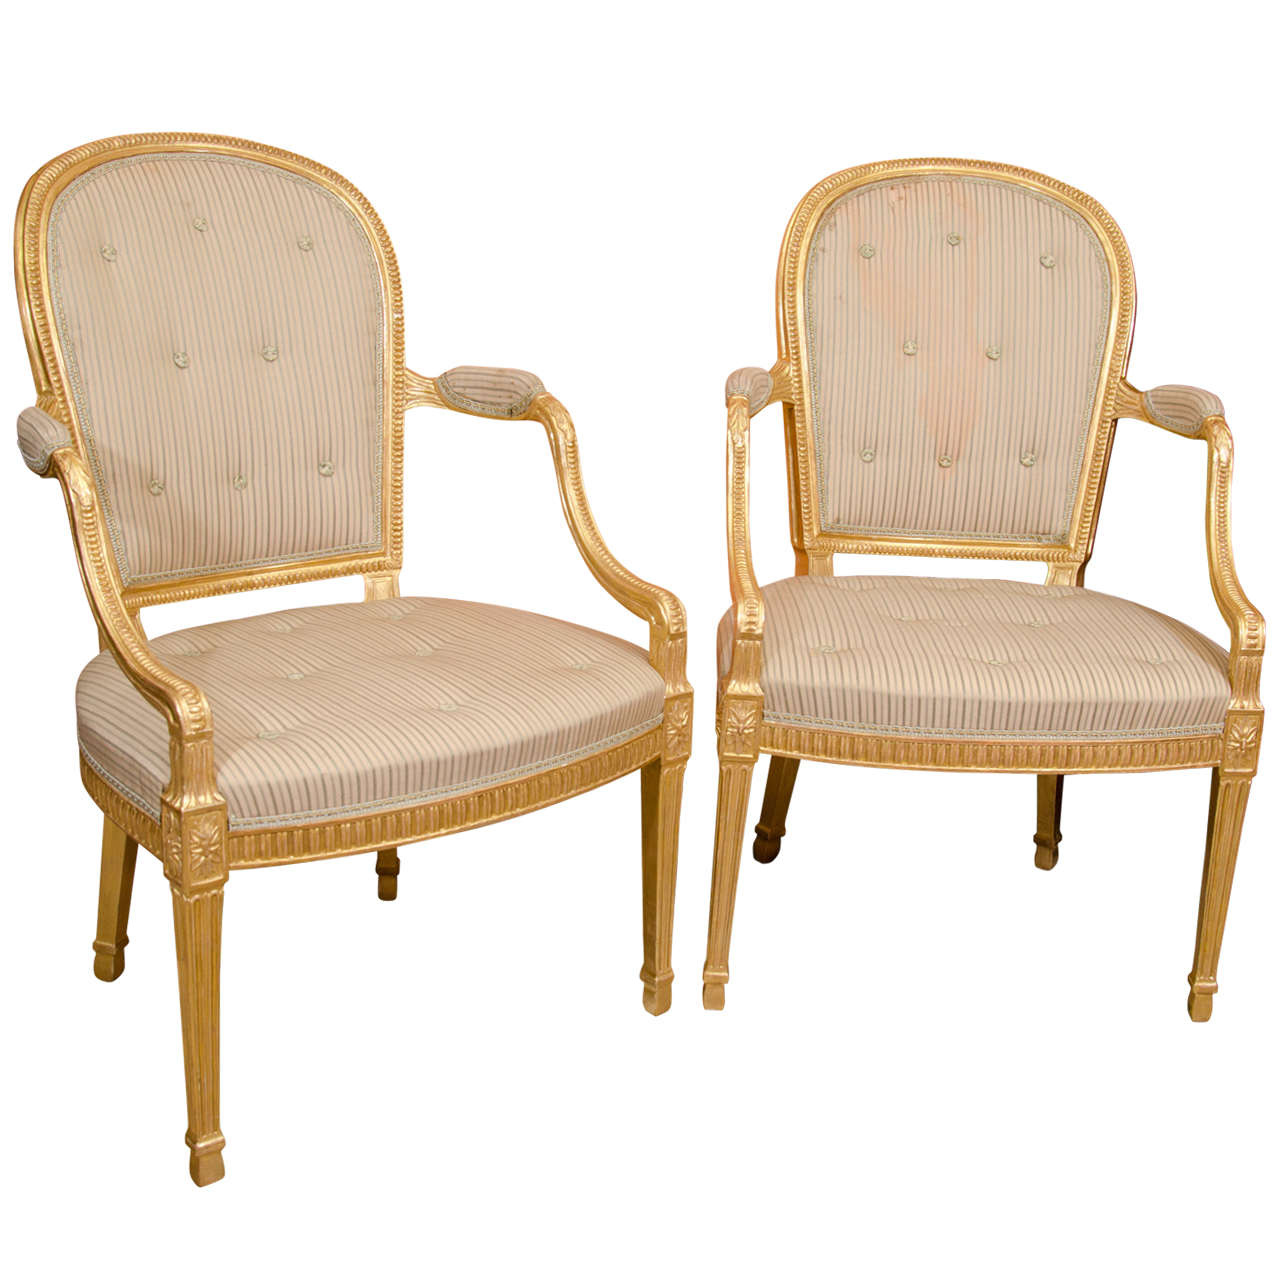 Pair of George III Gilt Armchairs